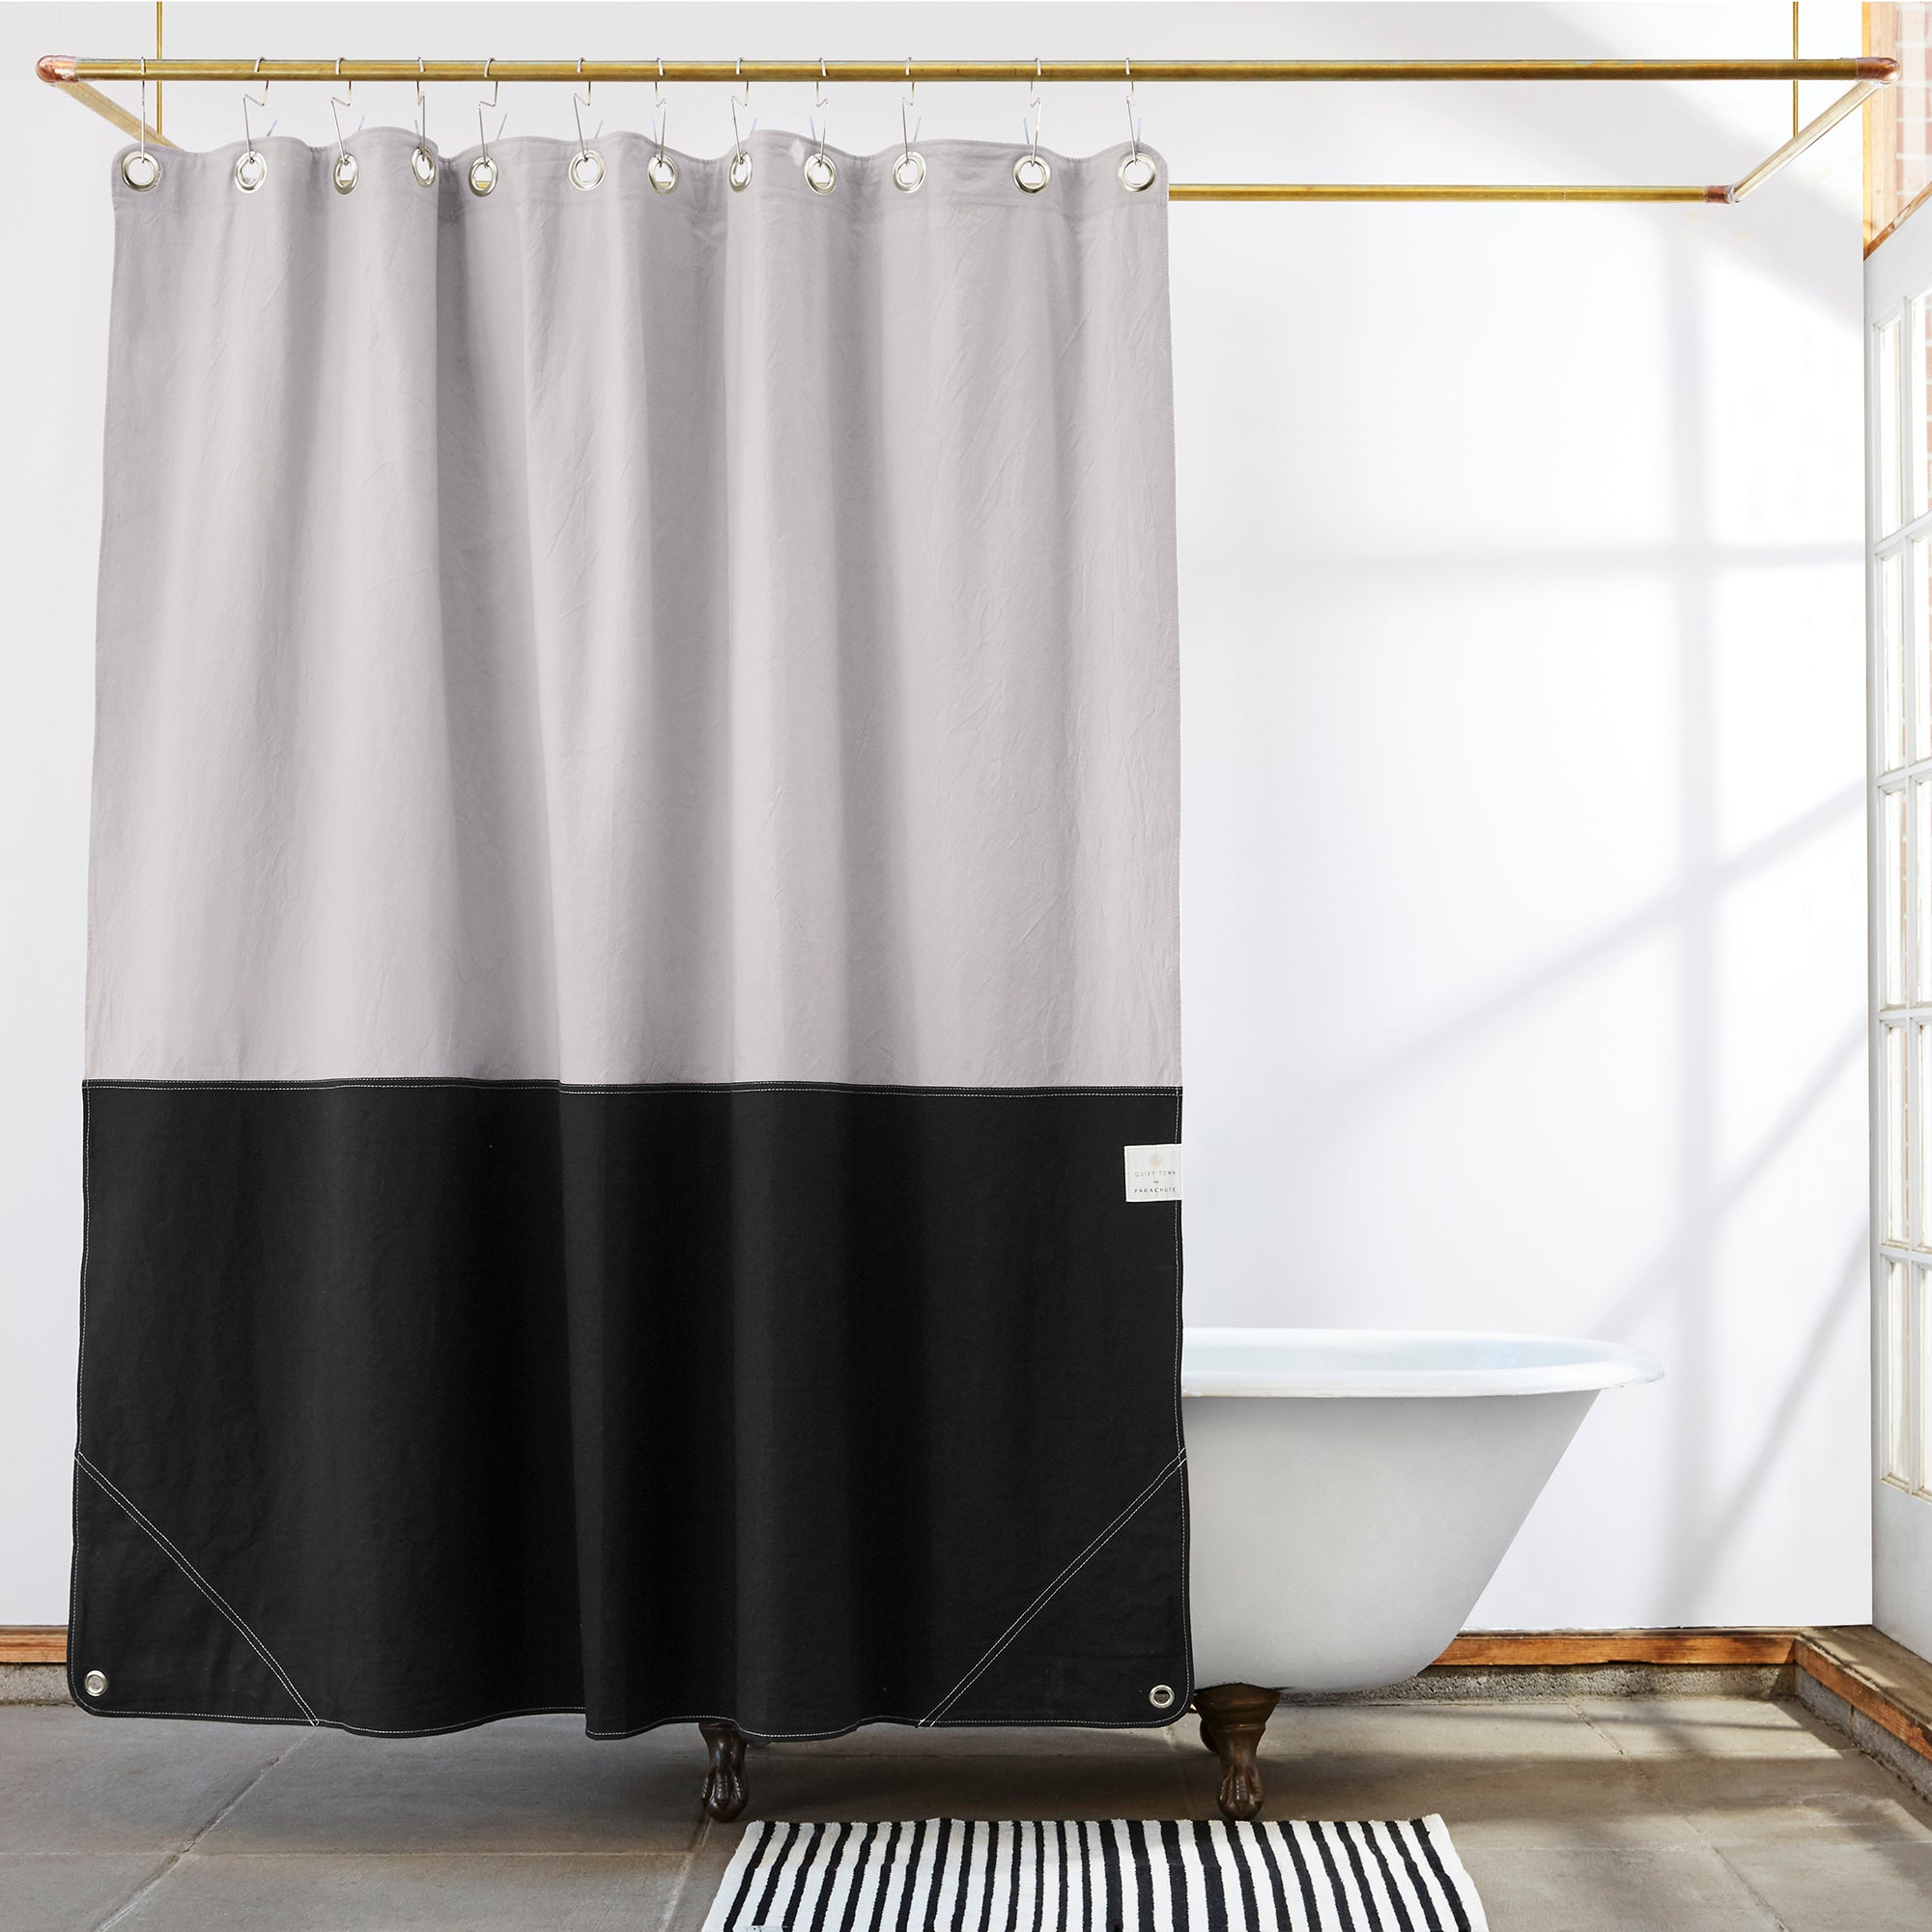 CANVAS SHOWER CURTAIN - ORIENT TIDEPOOL